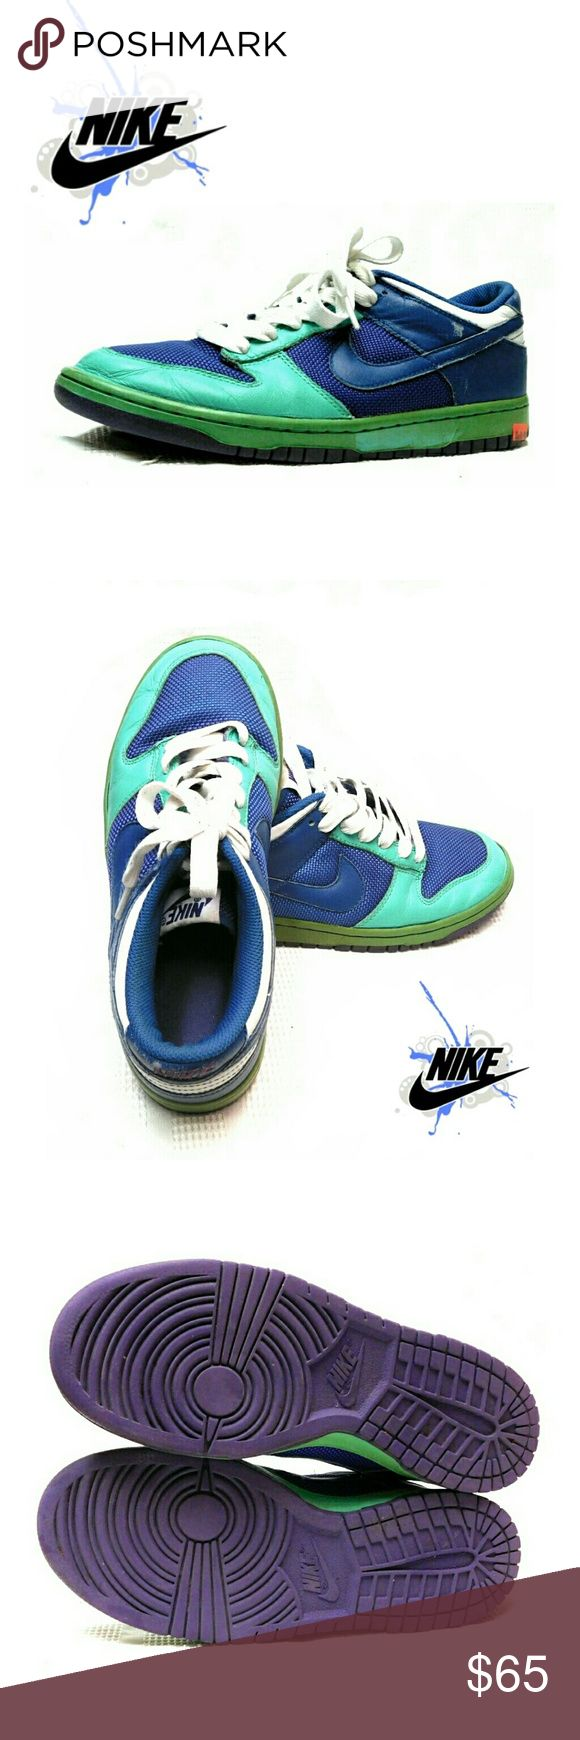 NIKE DUNK LOW AZURE/ATL BLUE -COURT PURPLE SNKERS NIKE DUNK LOW AZURE/ ATLANTIC BLUE - COURT PURPLE SNEAKERS Style # 309324-441 SZ 9 1/2 NO Rips or Tears.  Pls See All Pics. Ask ? If Needed Nike Shoes Sneakers